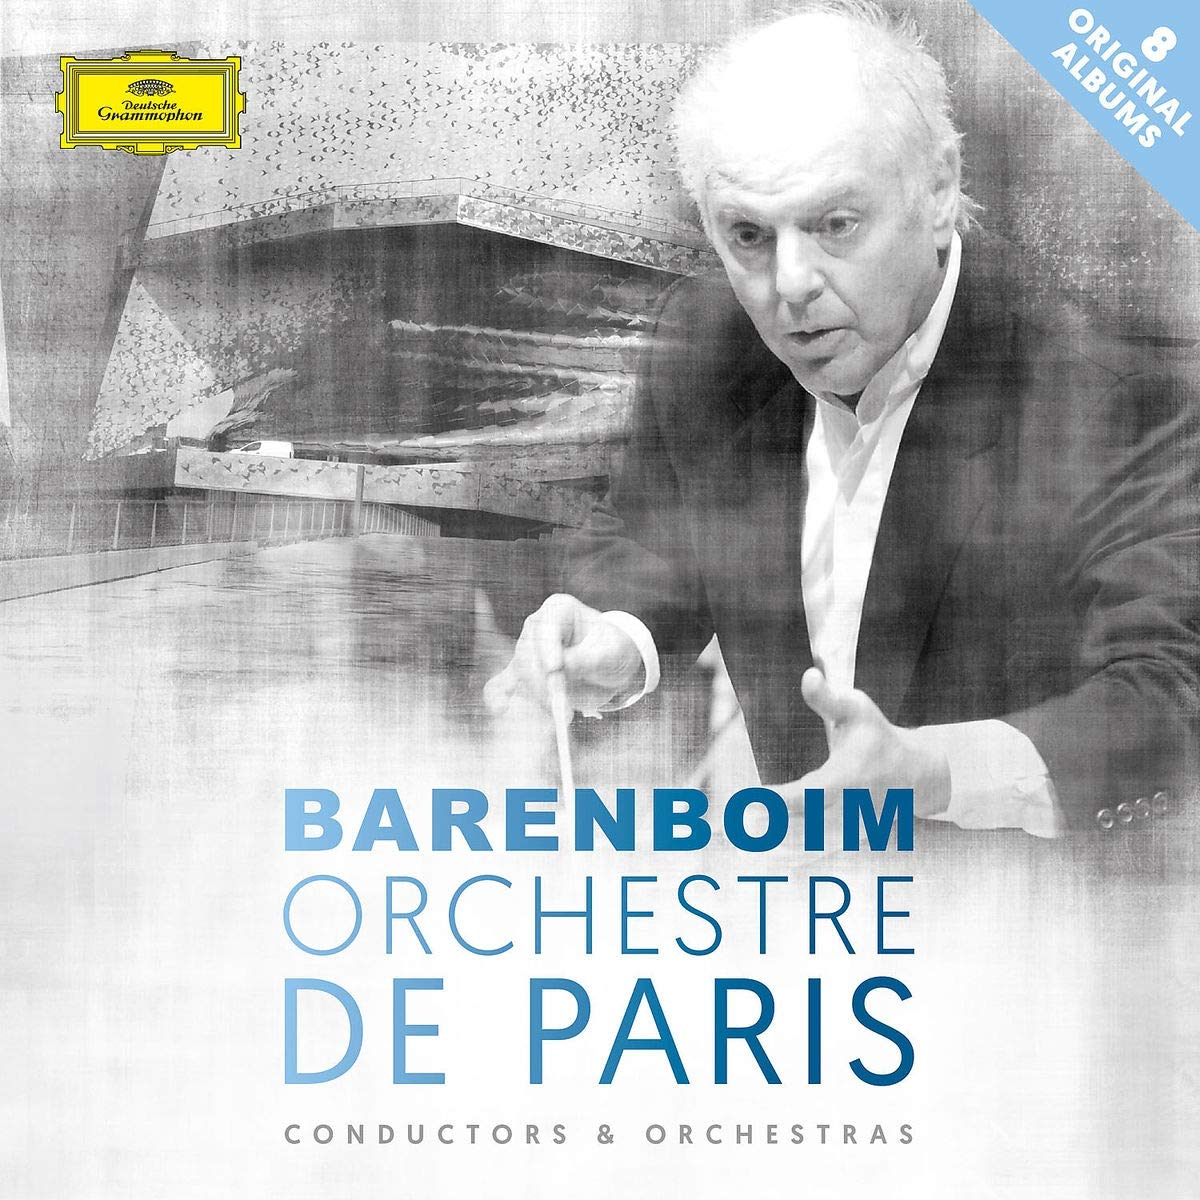 CD : DANIEL BARENBOIM/ORCHESTRE DE PARIS - Daniel Barenboim & Orchestre De Paris (Boxed Set, 8PC)